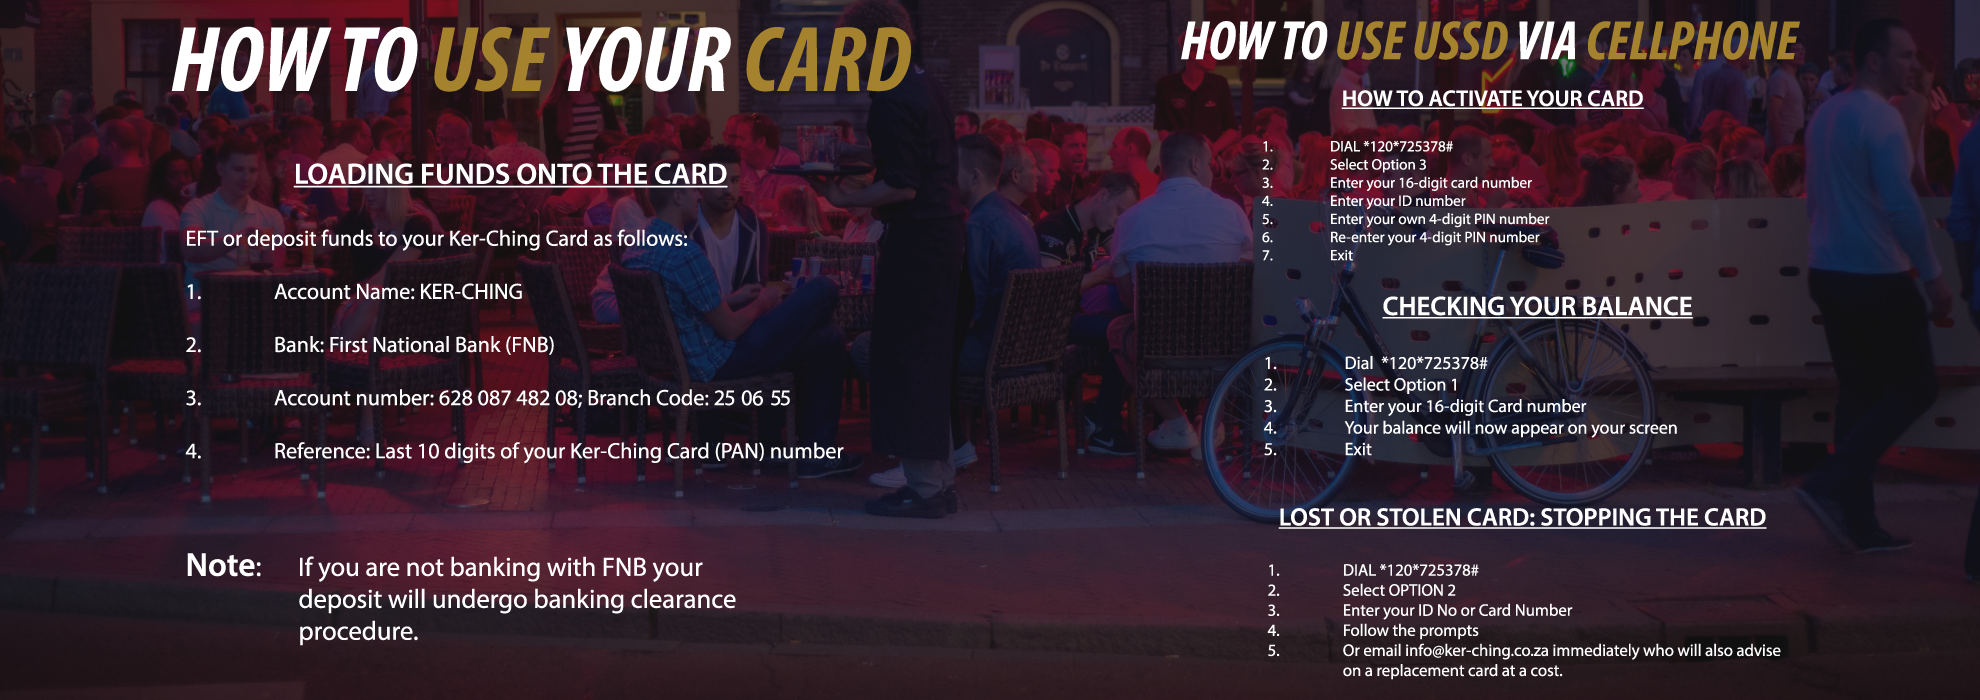 How-To-Use-Your-Card